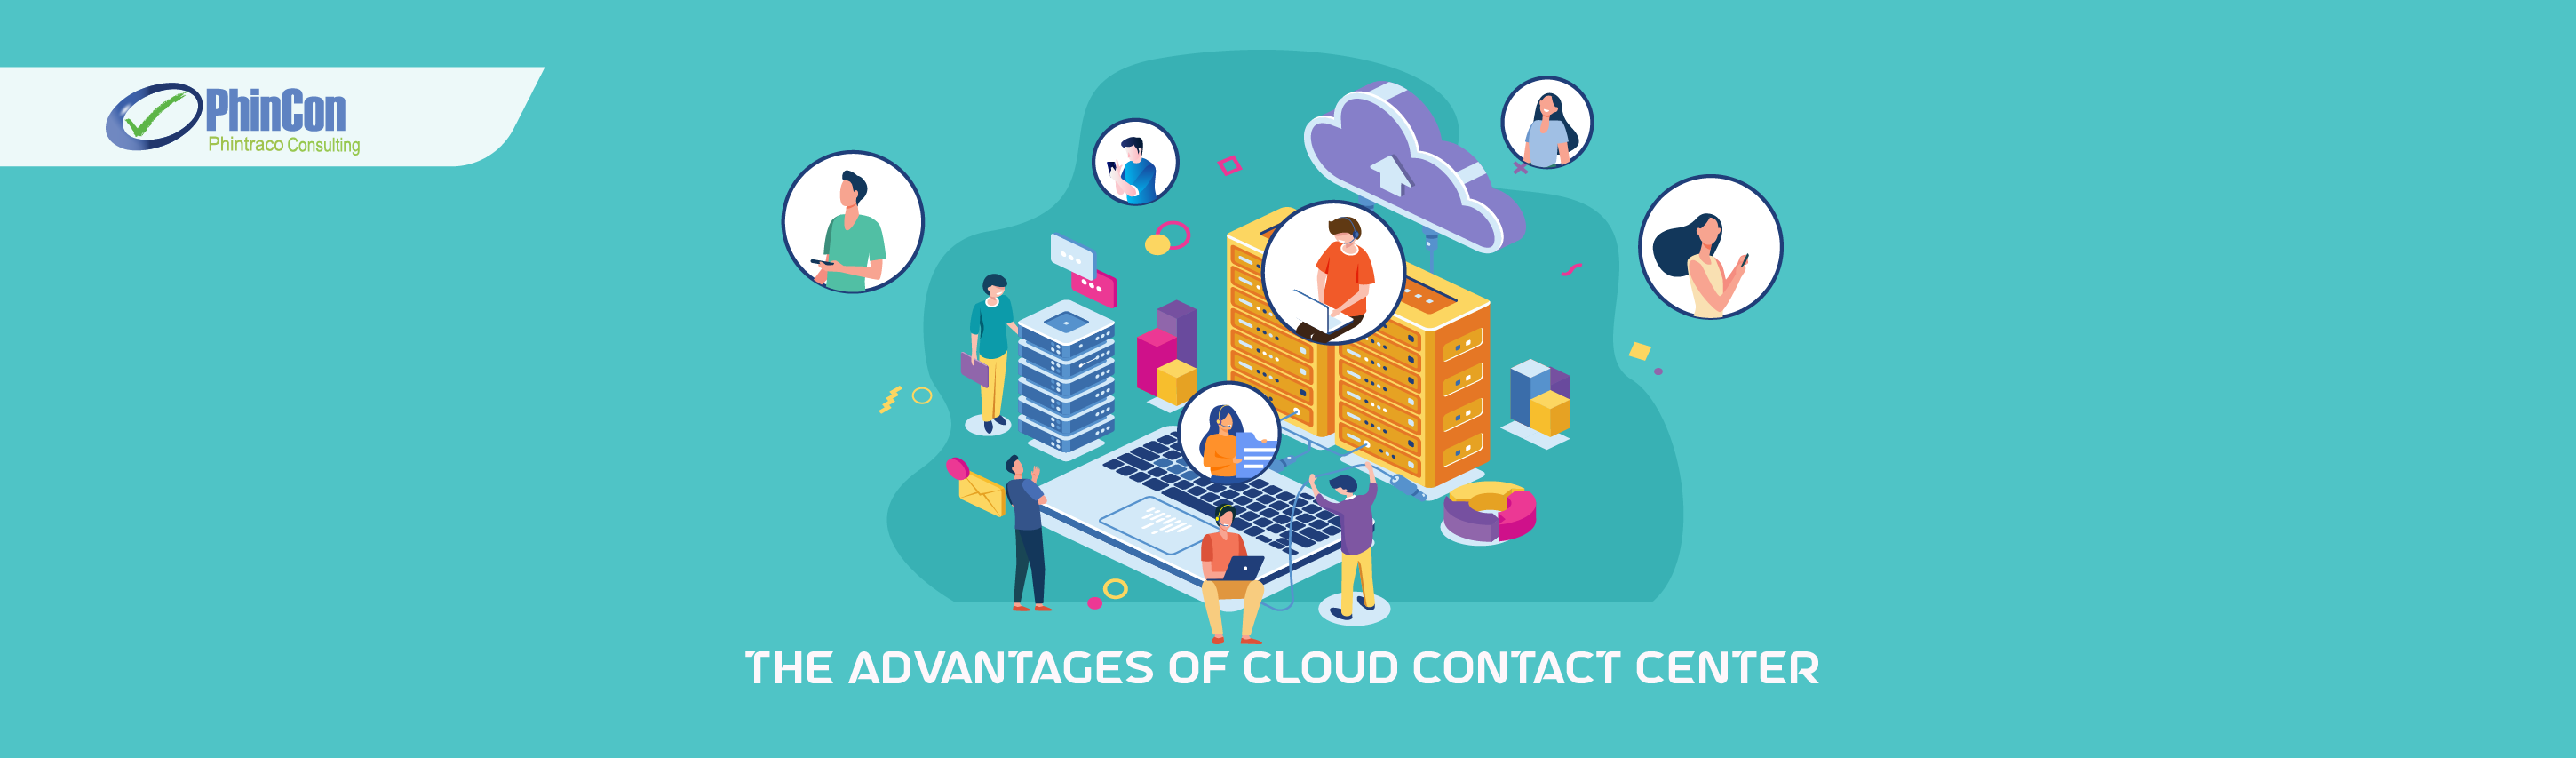 Benefits of Moving to a Cloud Contact Center